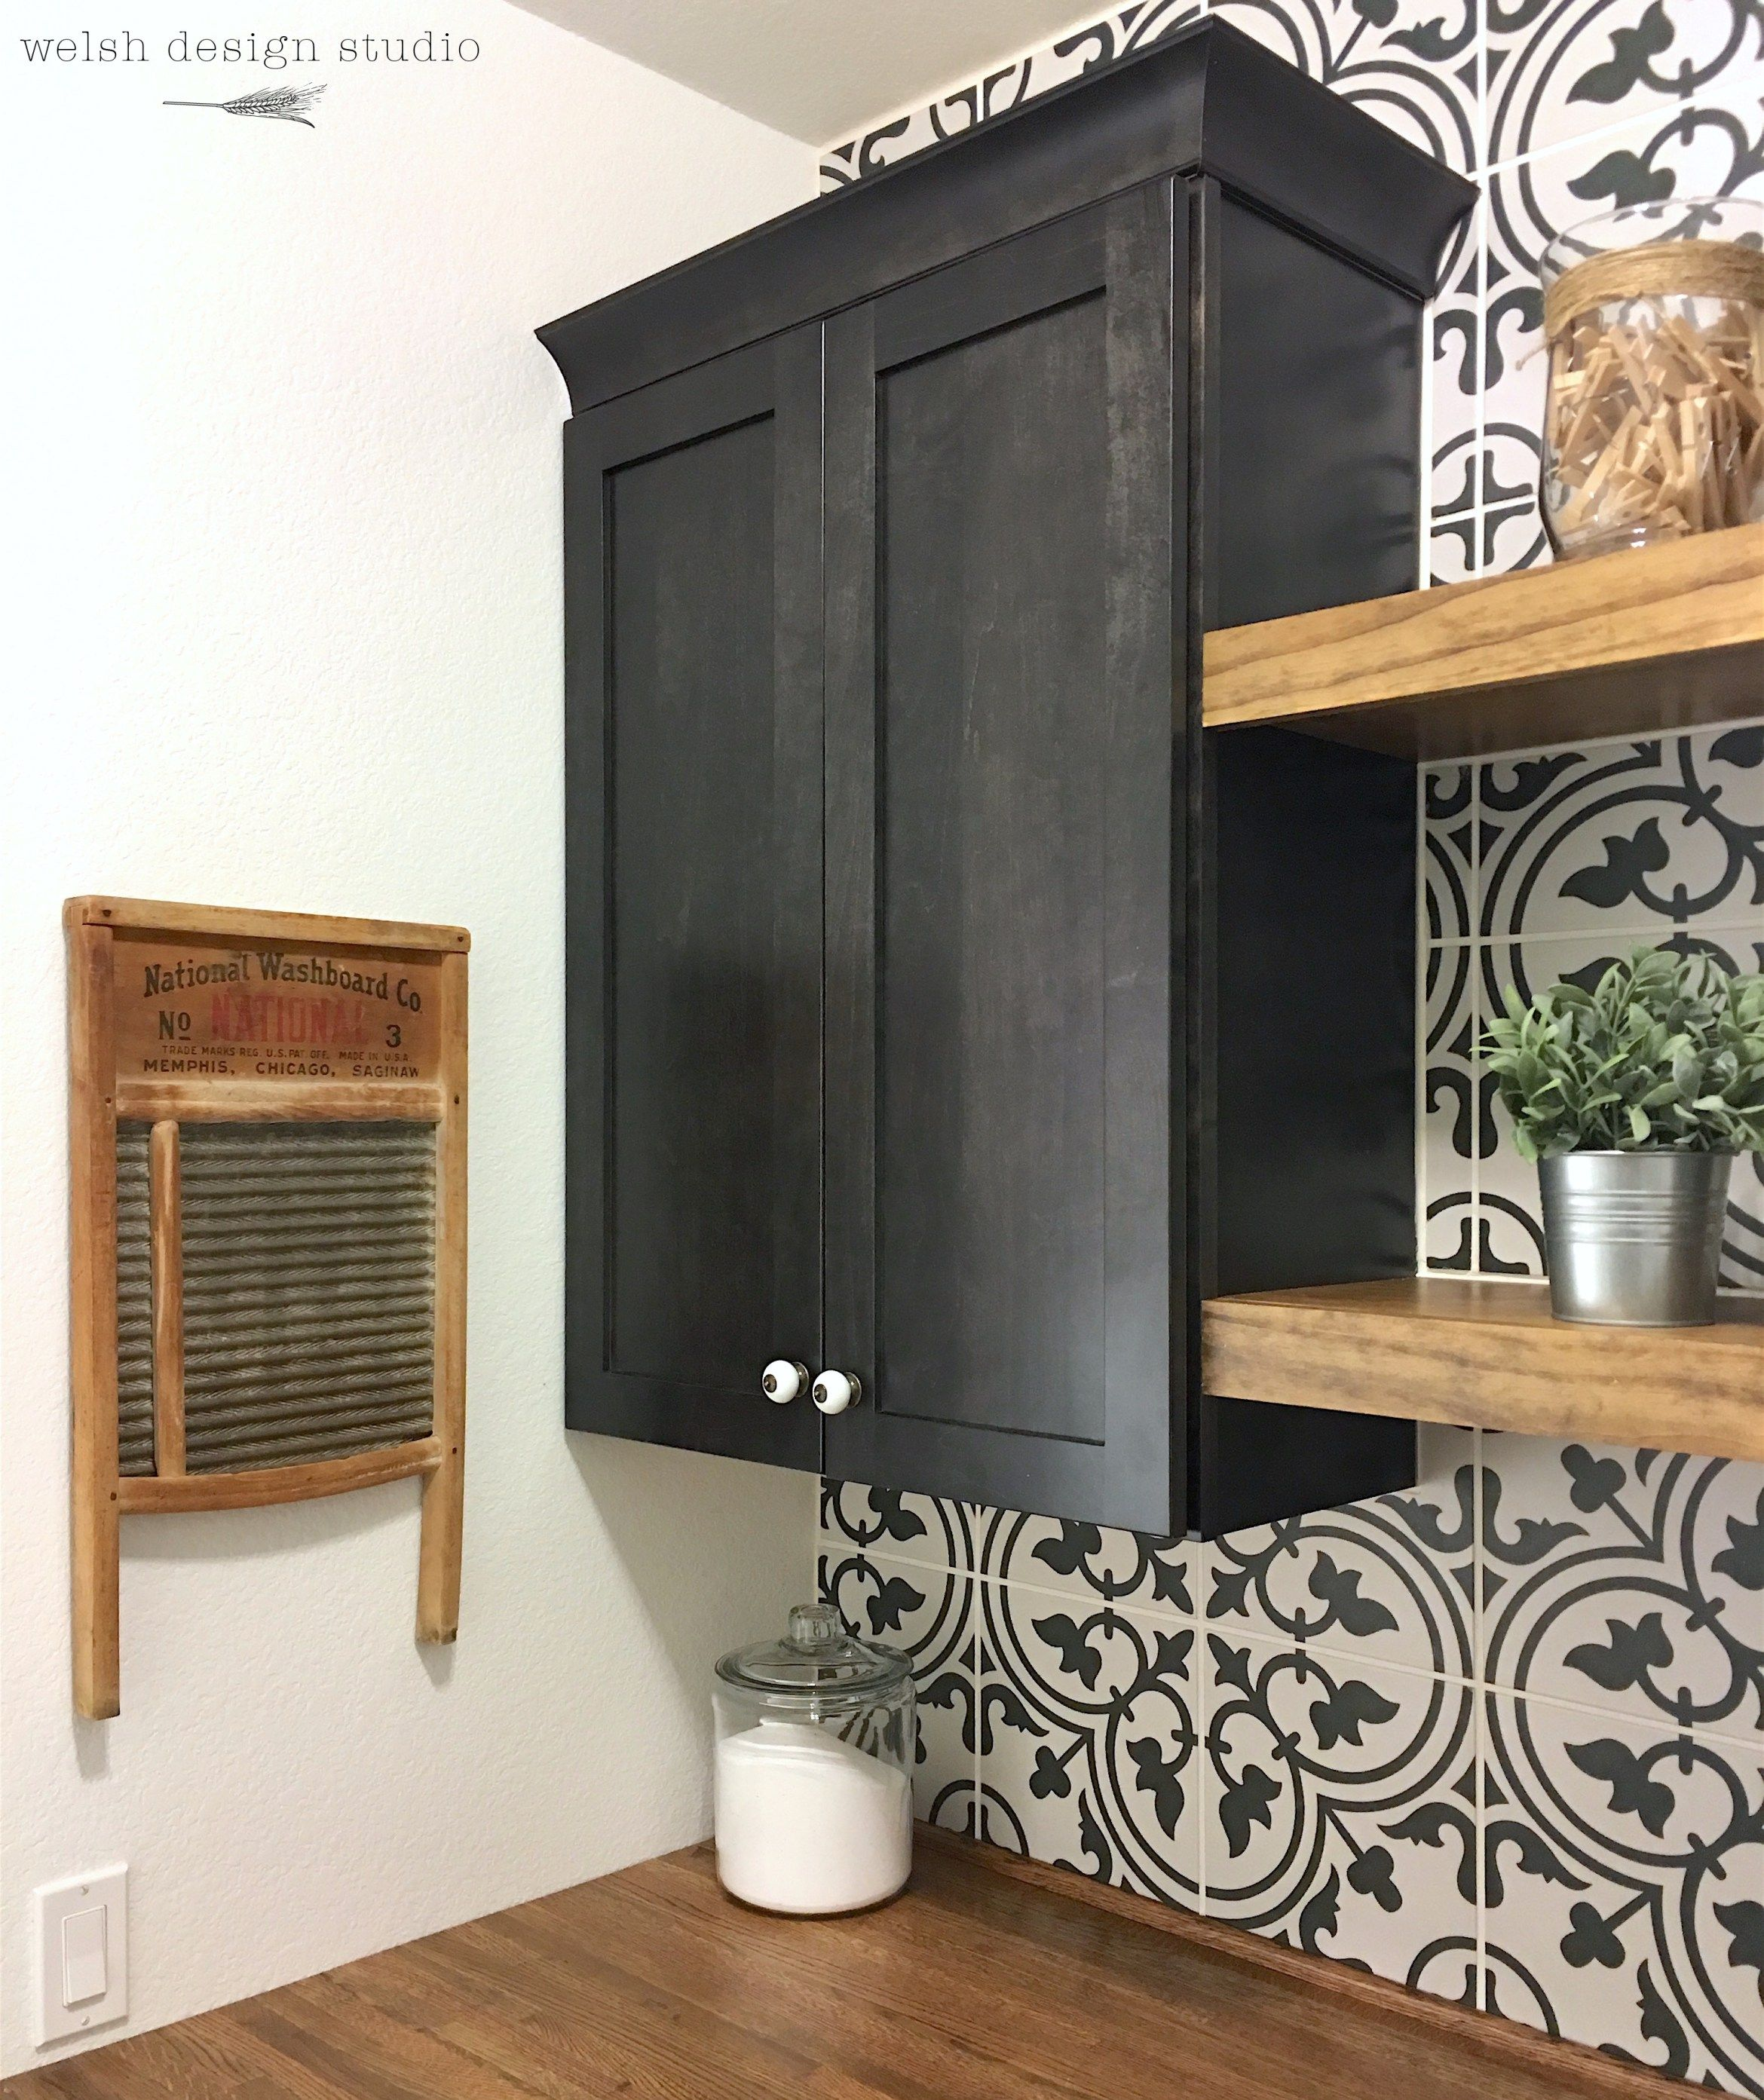 wooden inspiring wash framed well design home hooks racks also basin and laundry white decor freestanding combined towel featuring alluring machine wall stackable small interior washing faucet chrome washer with room woofont mirrors as ideas